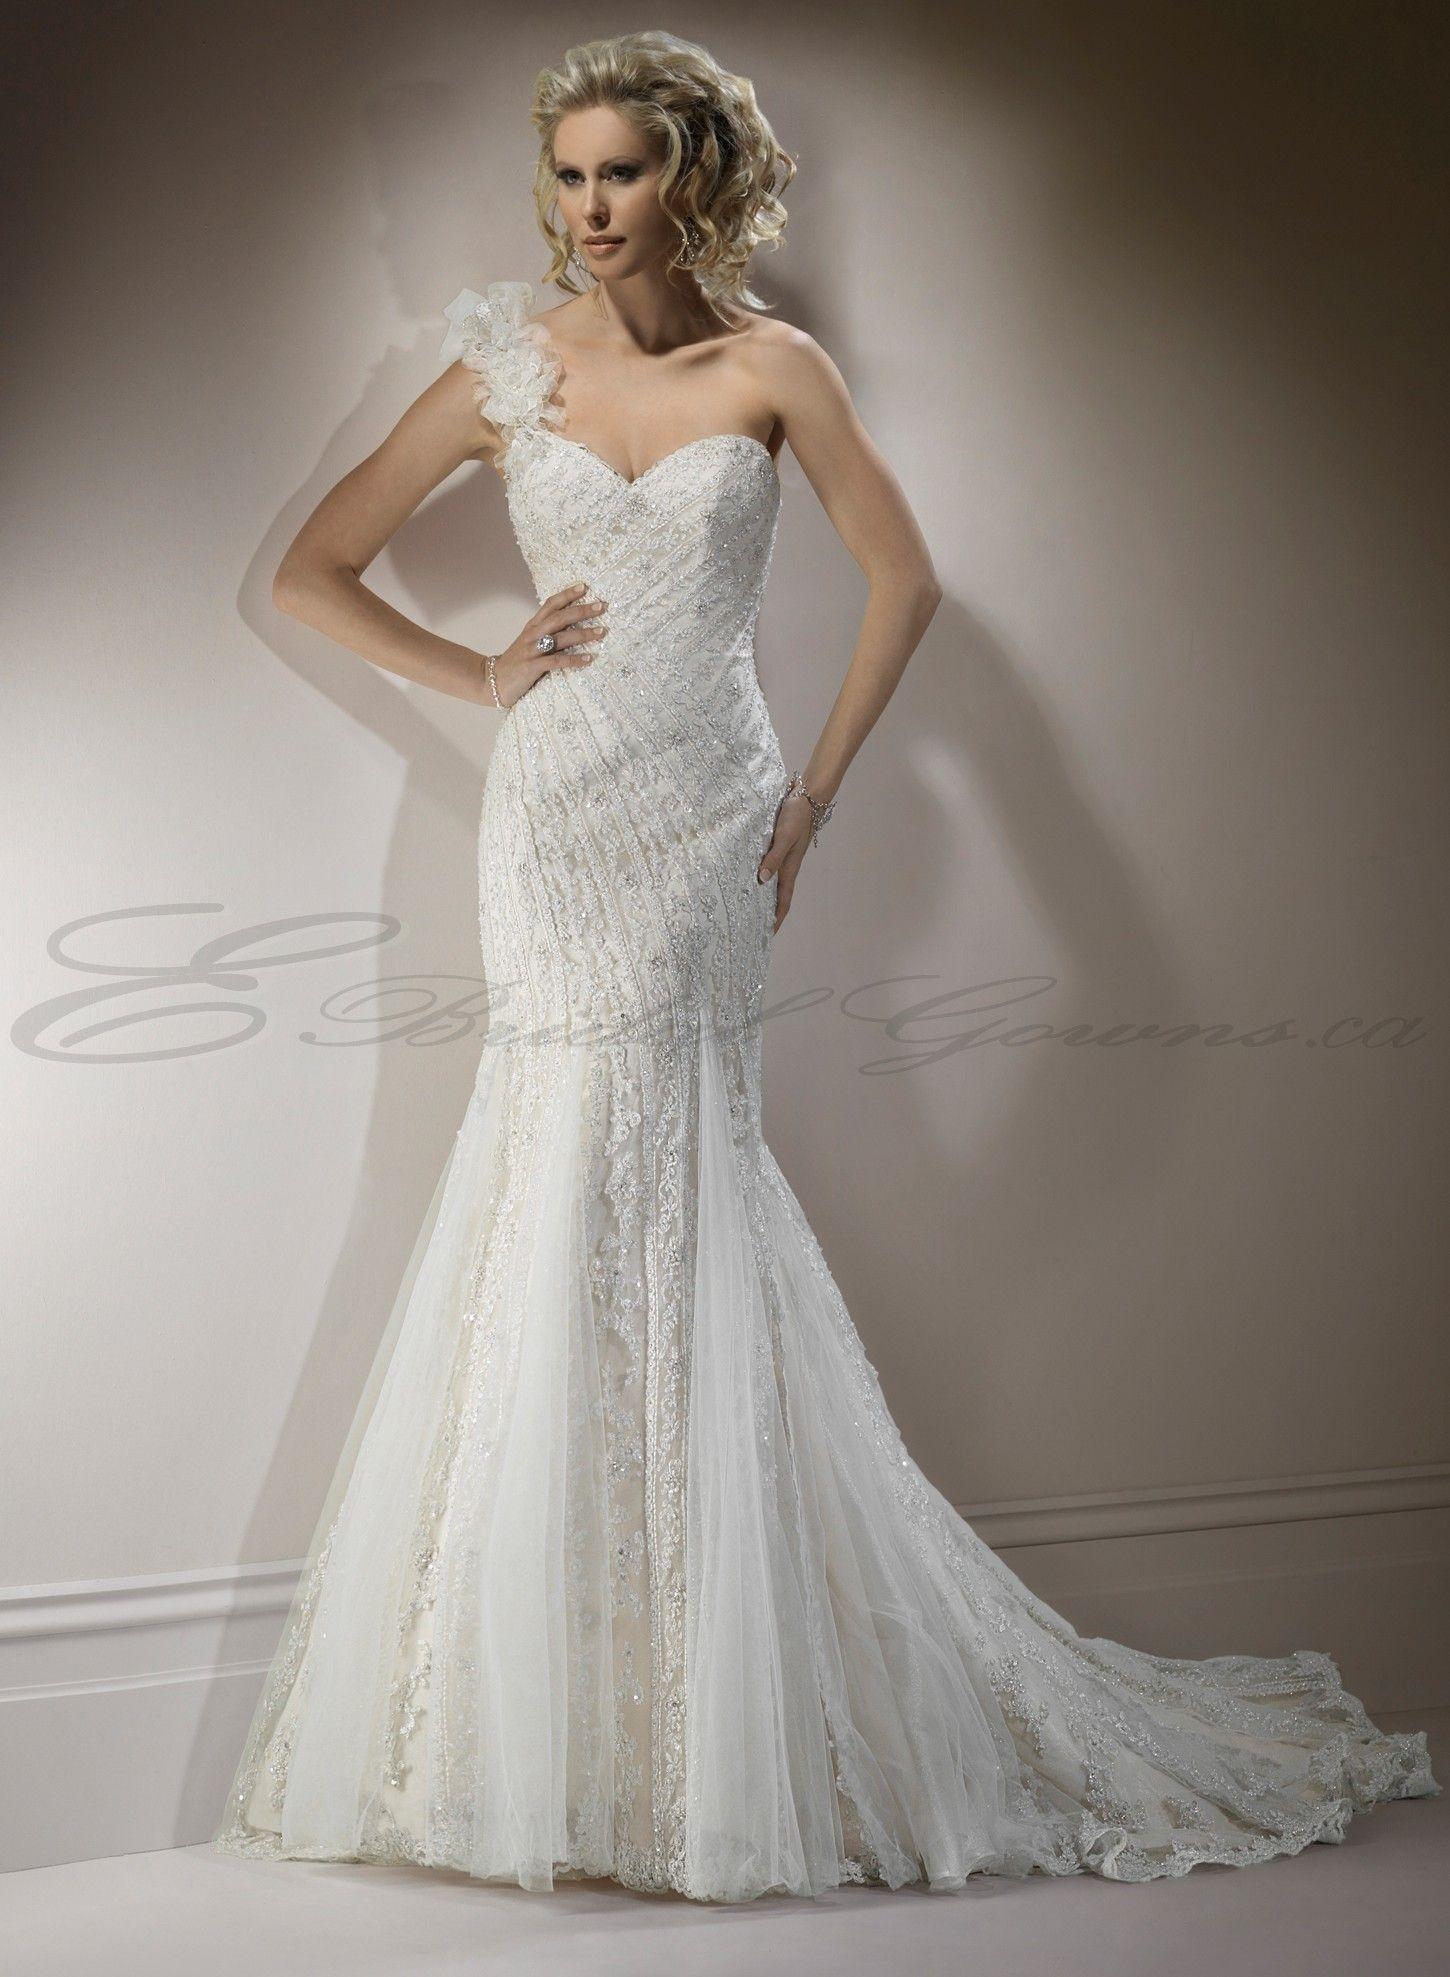 Mermaid Wedding Gowns | Lace Mermaid Sweetheart Neckline Fit and ...